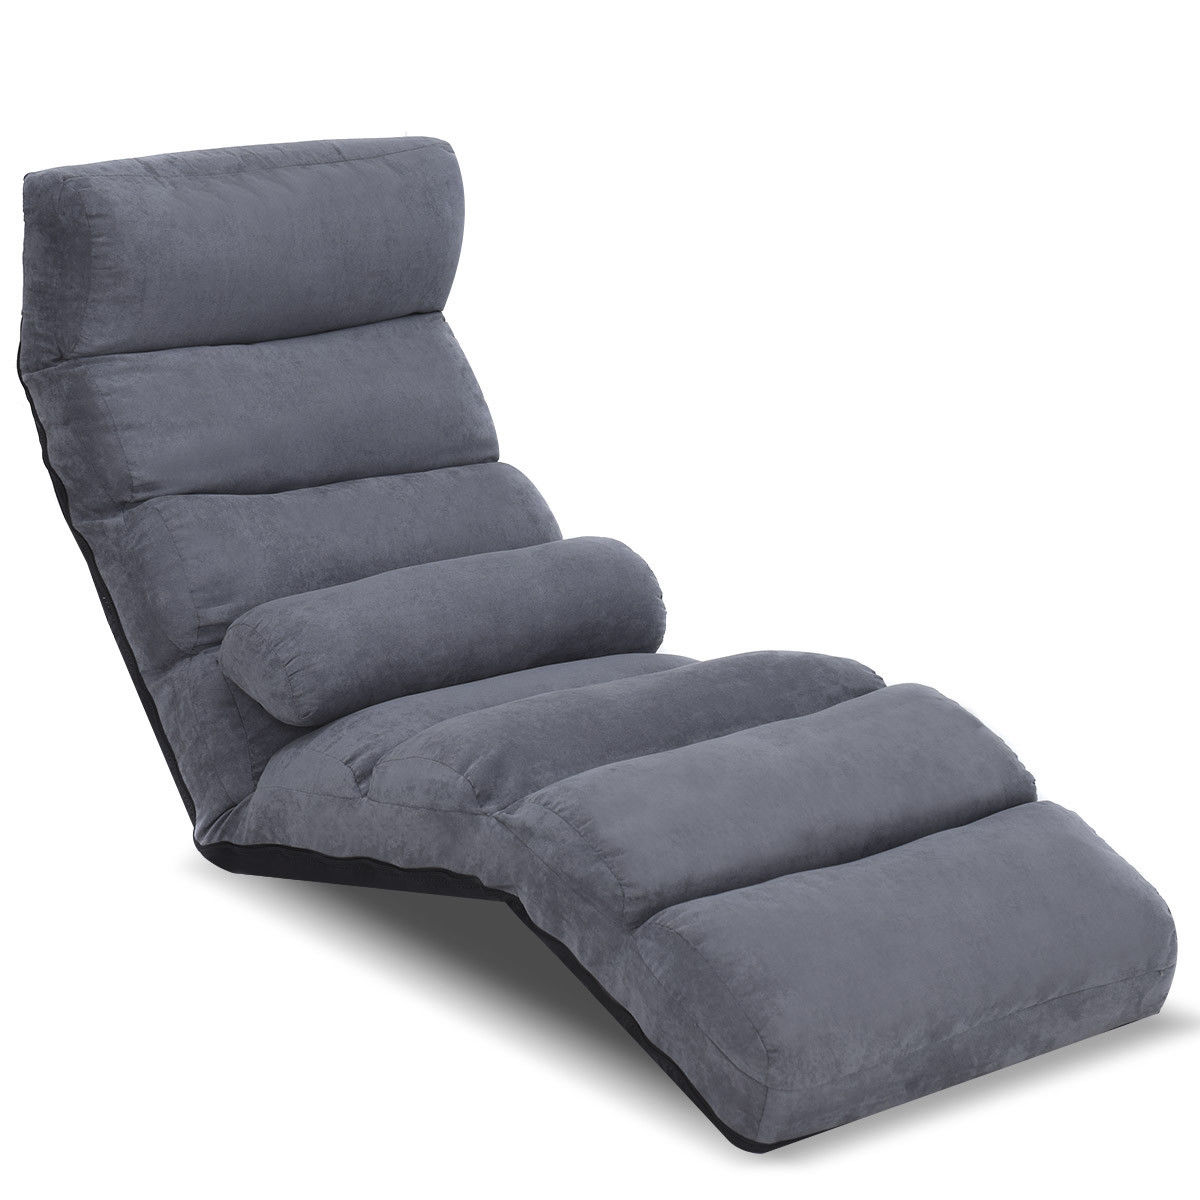 Costway Folding Lazy Sofa Floor Chair Couch Beds Lounge Chair Adjustable w Pillow Gray by Costway